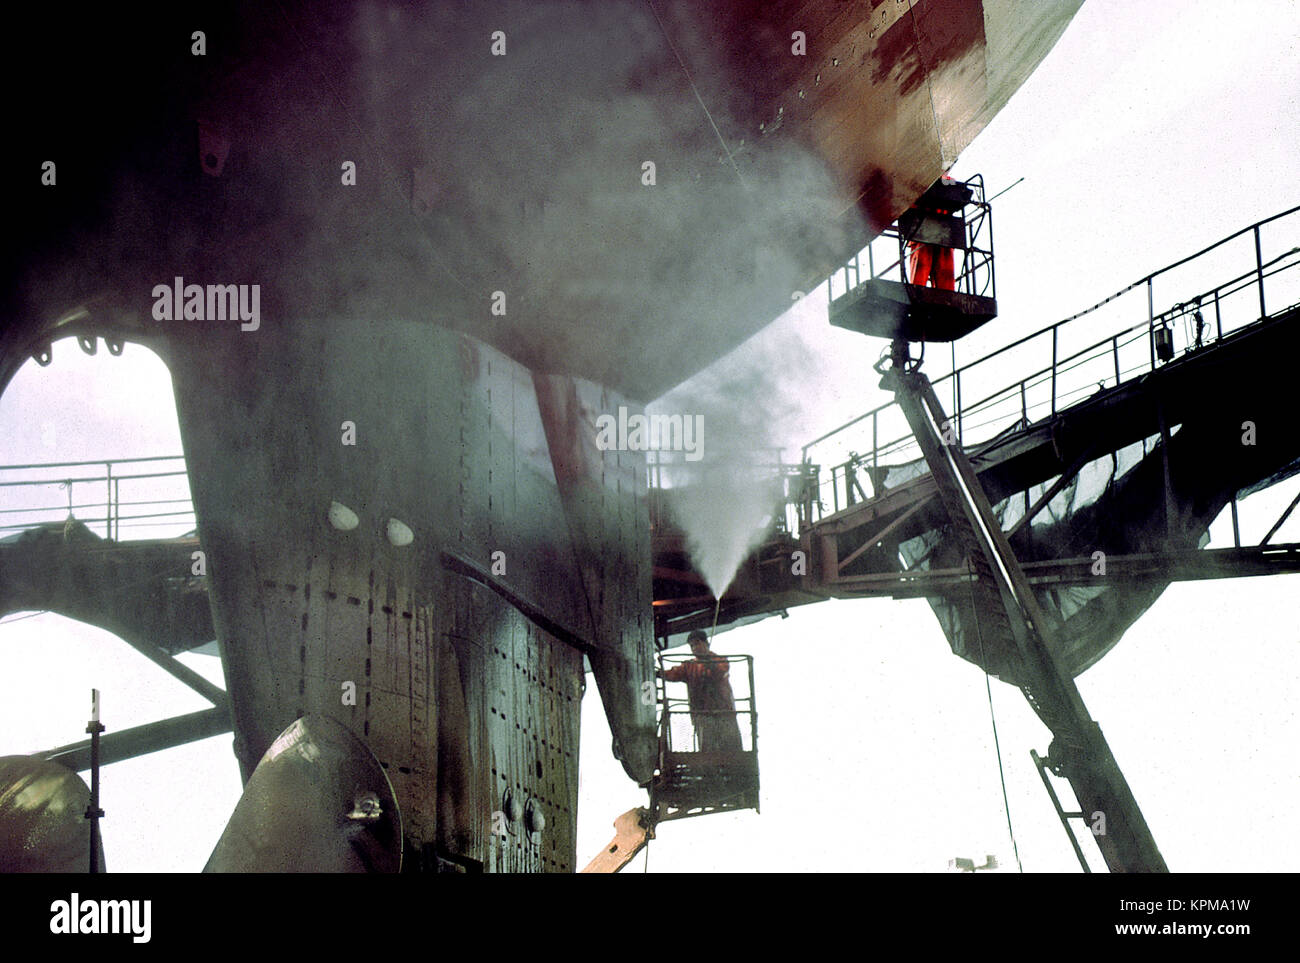 Hamburg, one of the most beautiful and most popular tourist destinations in the world.Sietas Shipyard. - Stock Image